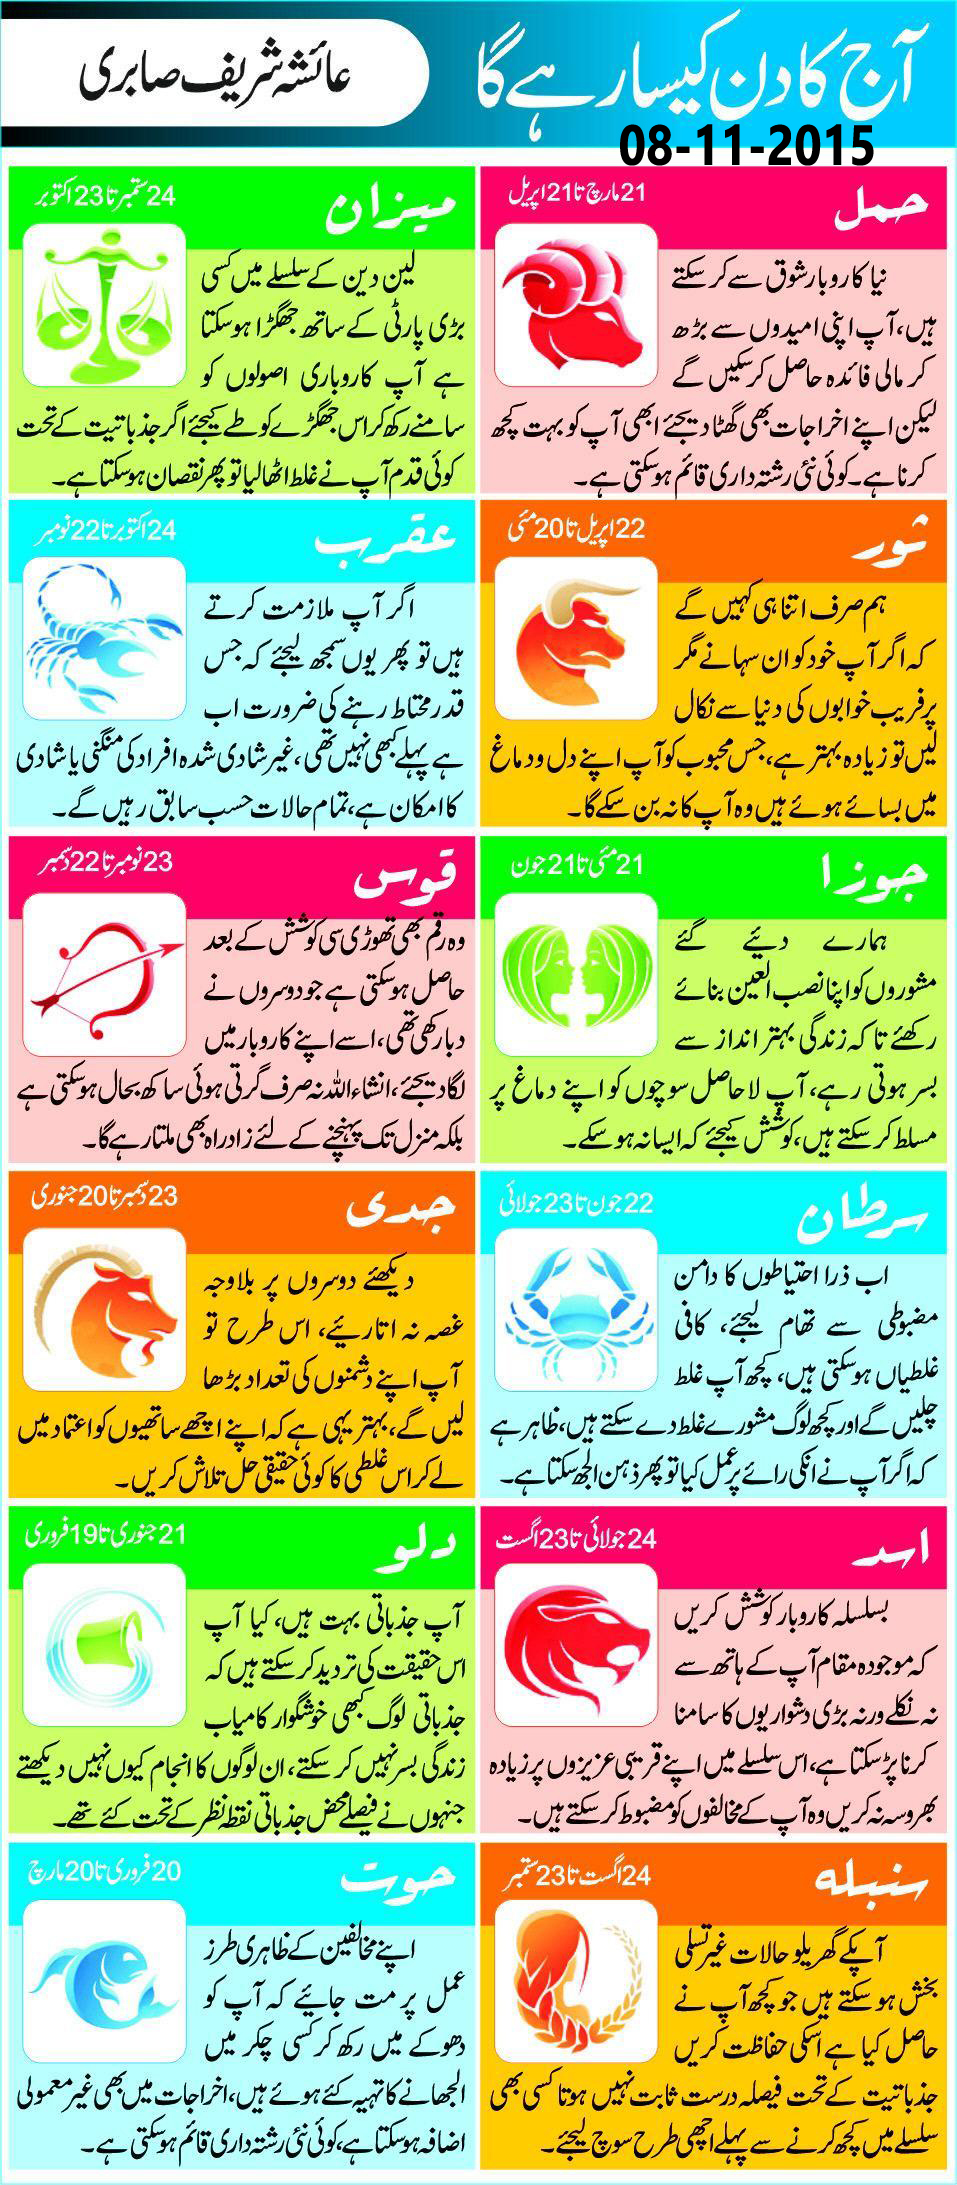 Today Daily Horoscope in Urdu 8 November 2015